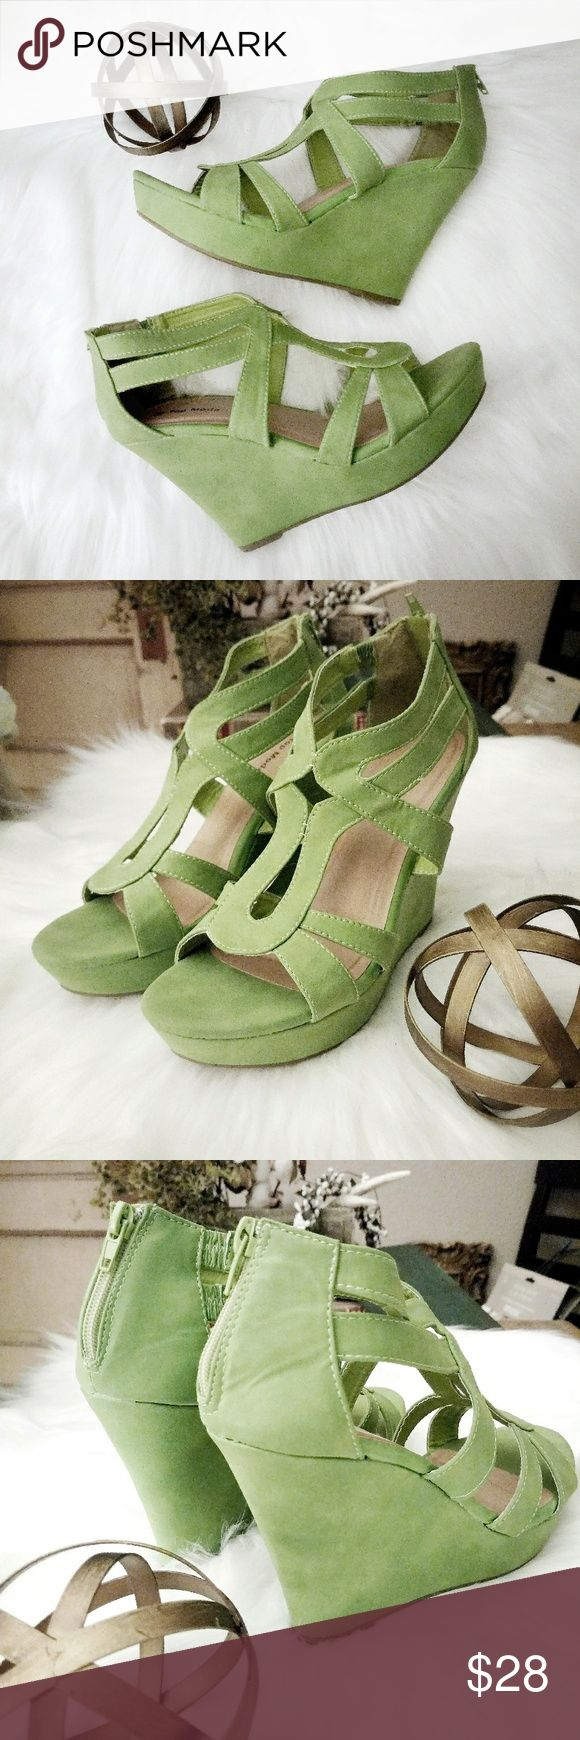 """Top Moda Moss Green Suede Wedges Like new moss green strappy suede wedge heels with zippers on the back heel. Size 10M, heel height 4.5"""". Top Moda Shoes Wedges"""